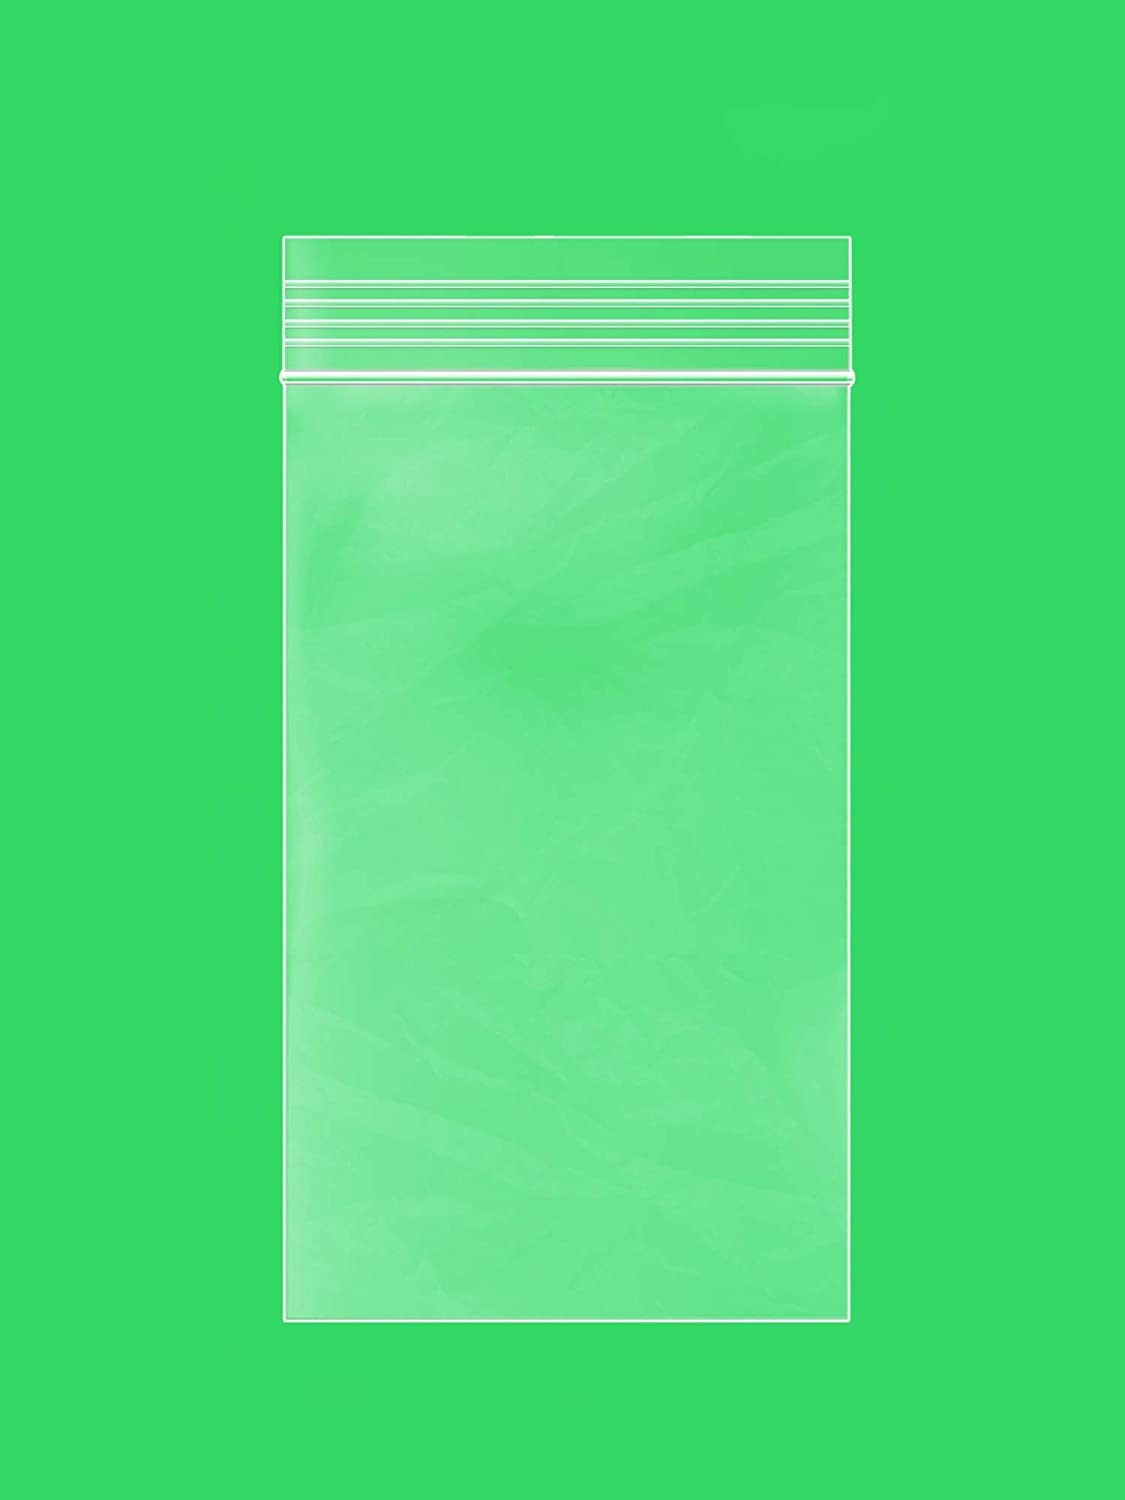 3 x 5 inches, 2Mil Clear Reclosable Zip Lock Bags, case of 1,000 GPI Brand